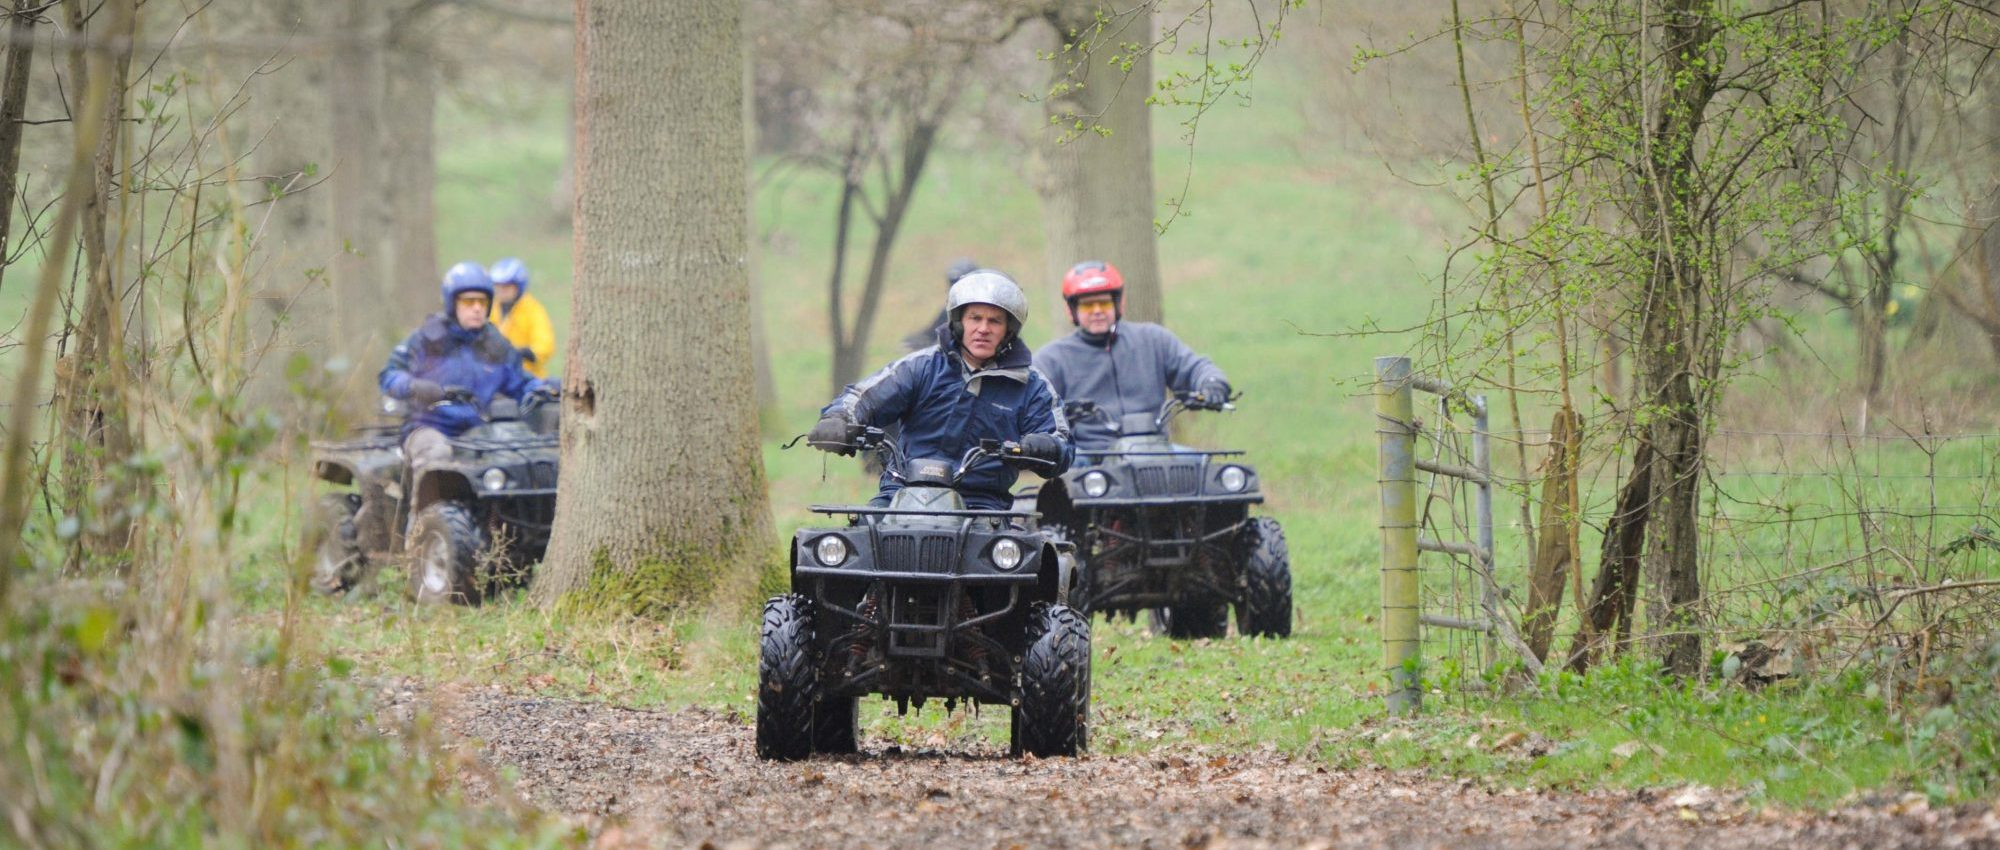 quad biking activity